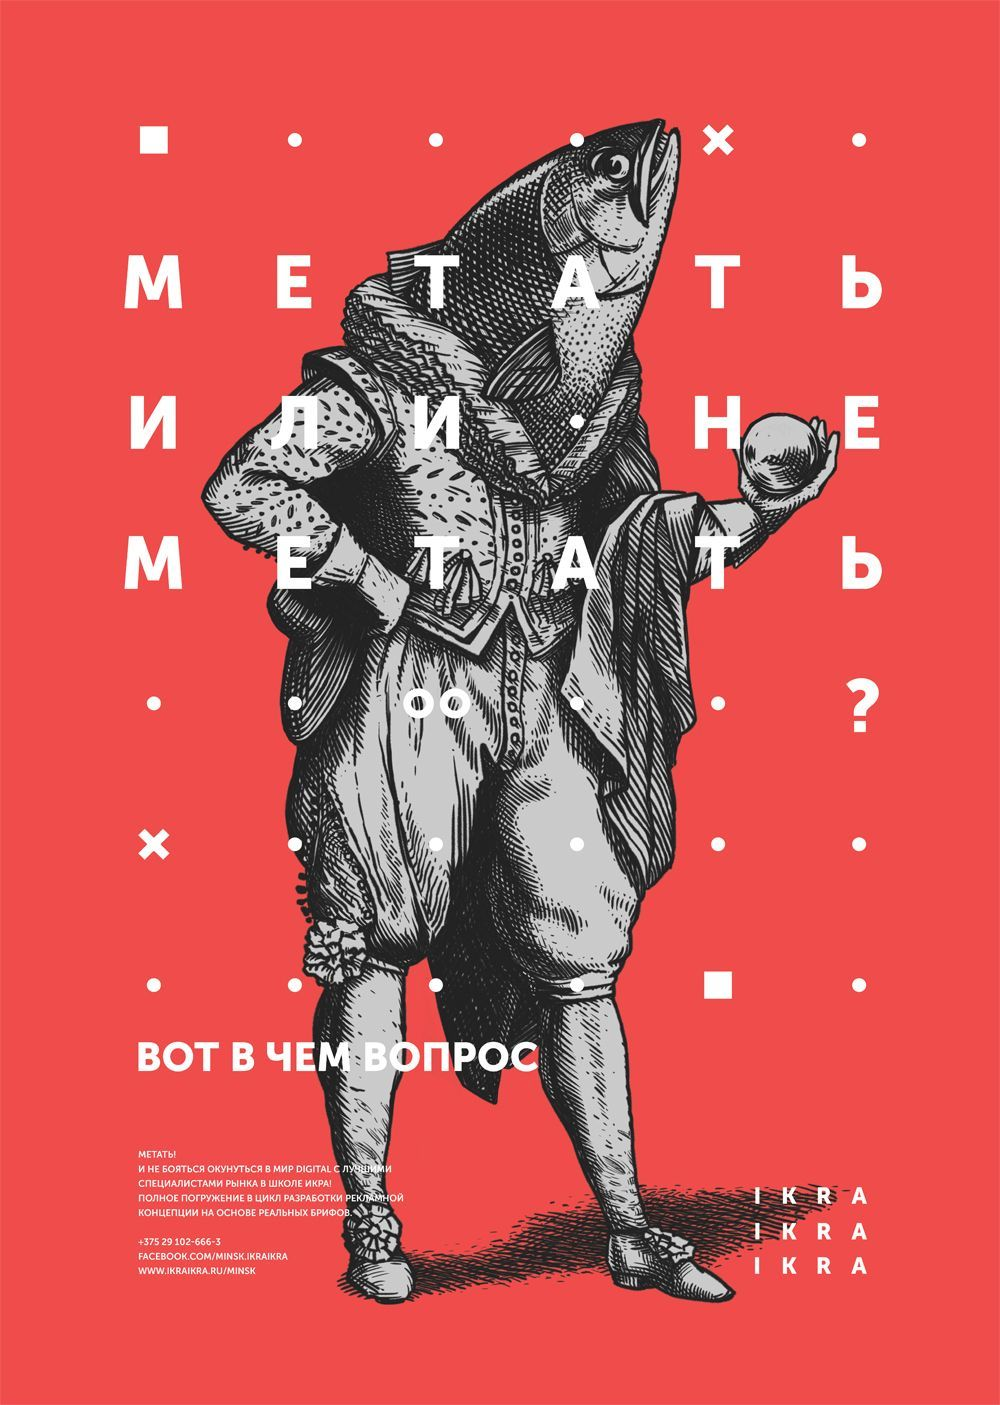 Graphic Design : IKRA Posters Shakespeare by Lesha Limonov (Daily Design Inspiration) - BestBLog #graphicdesign